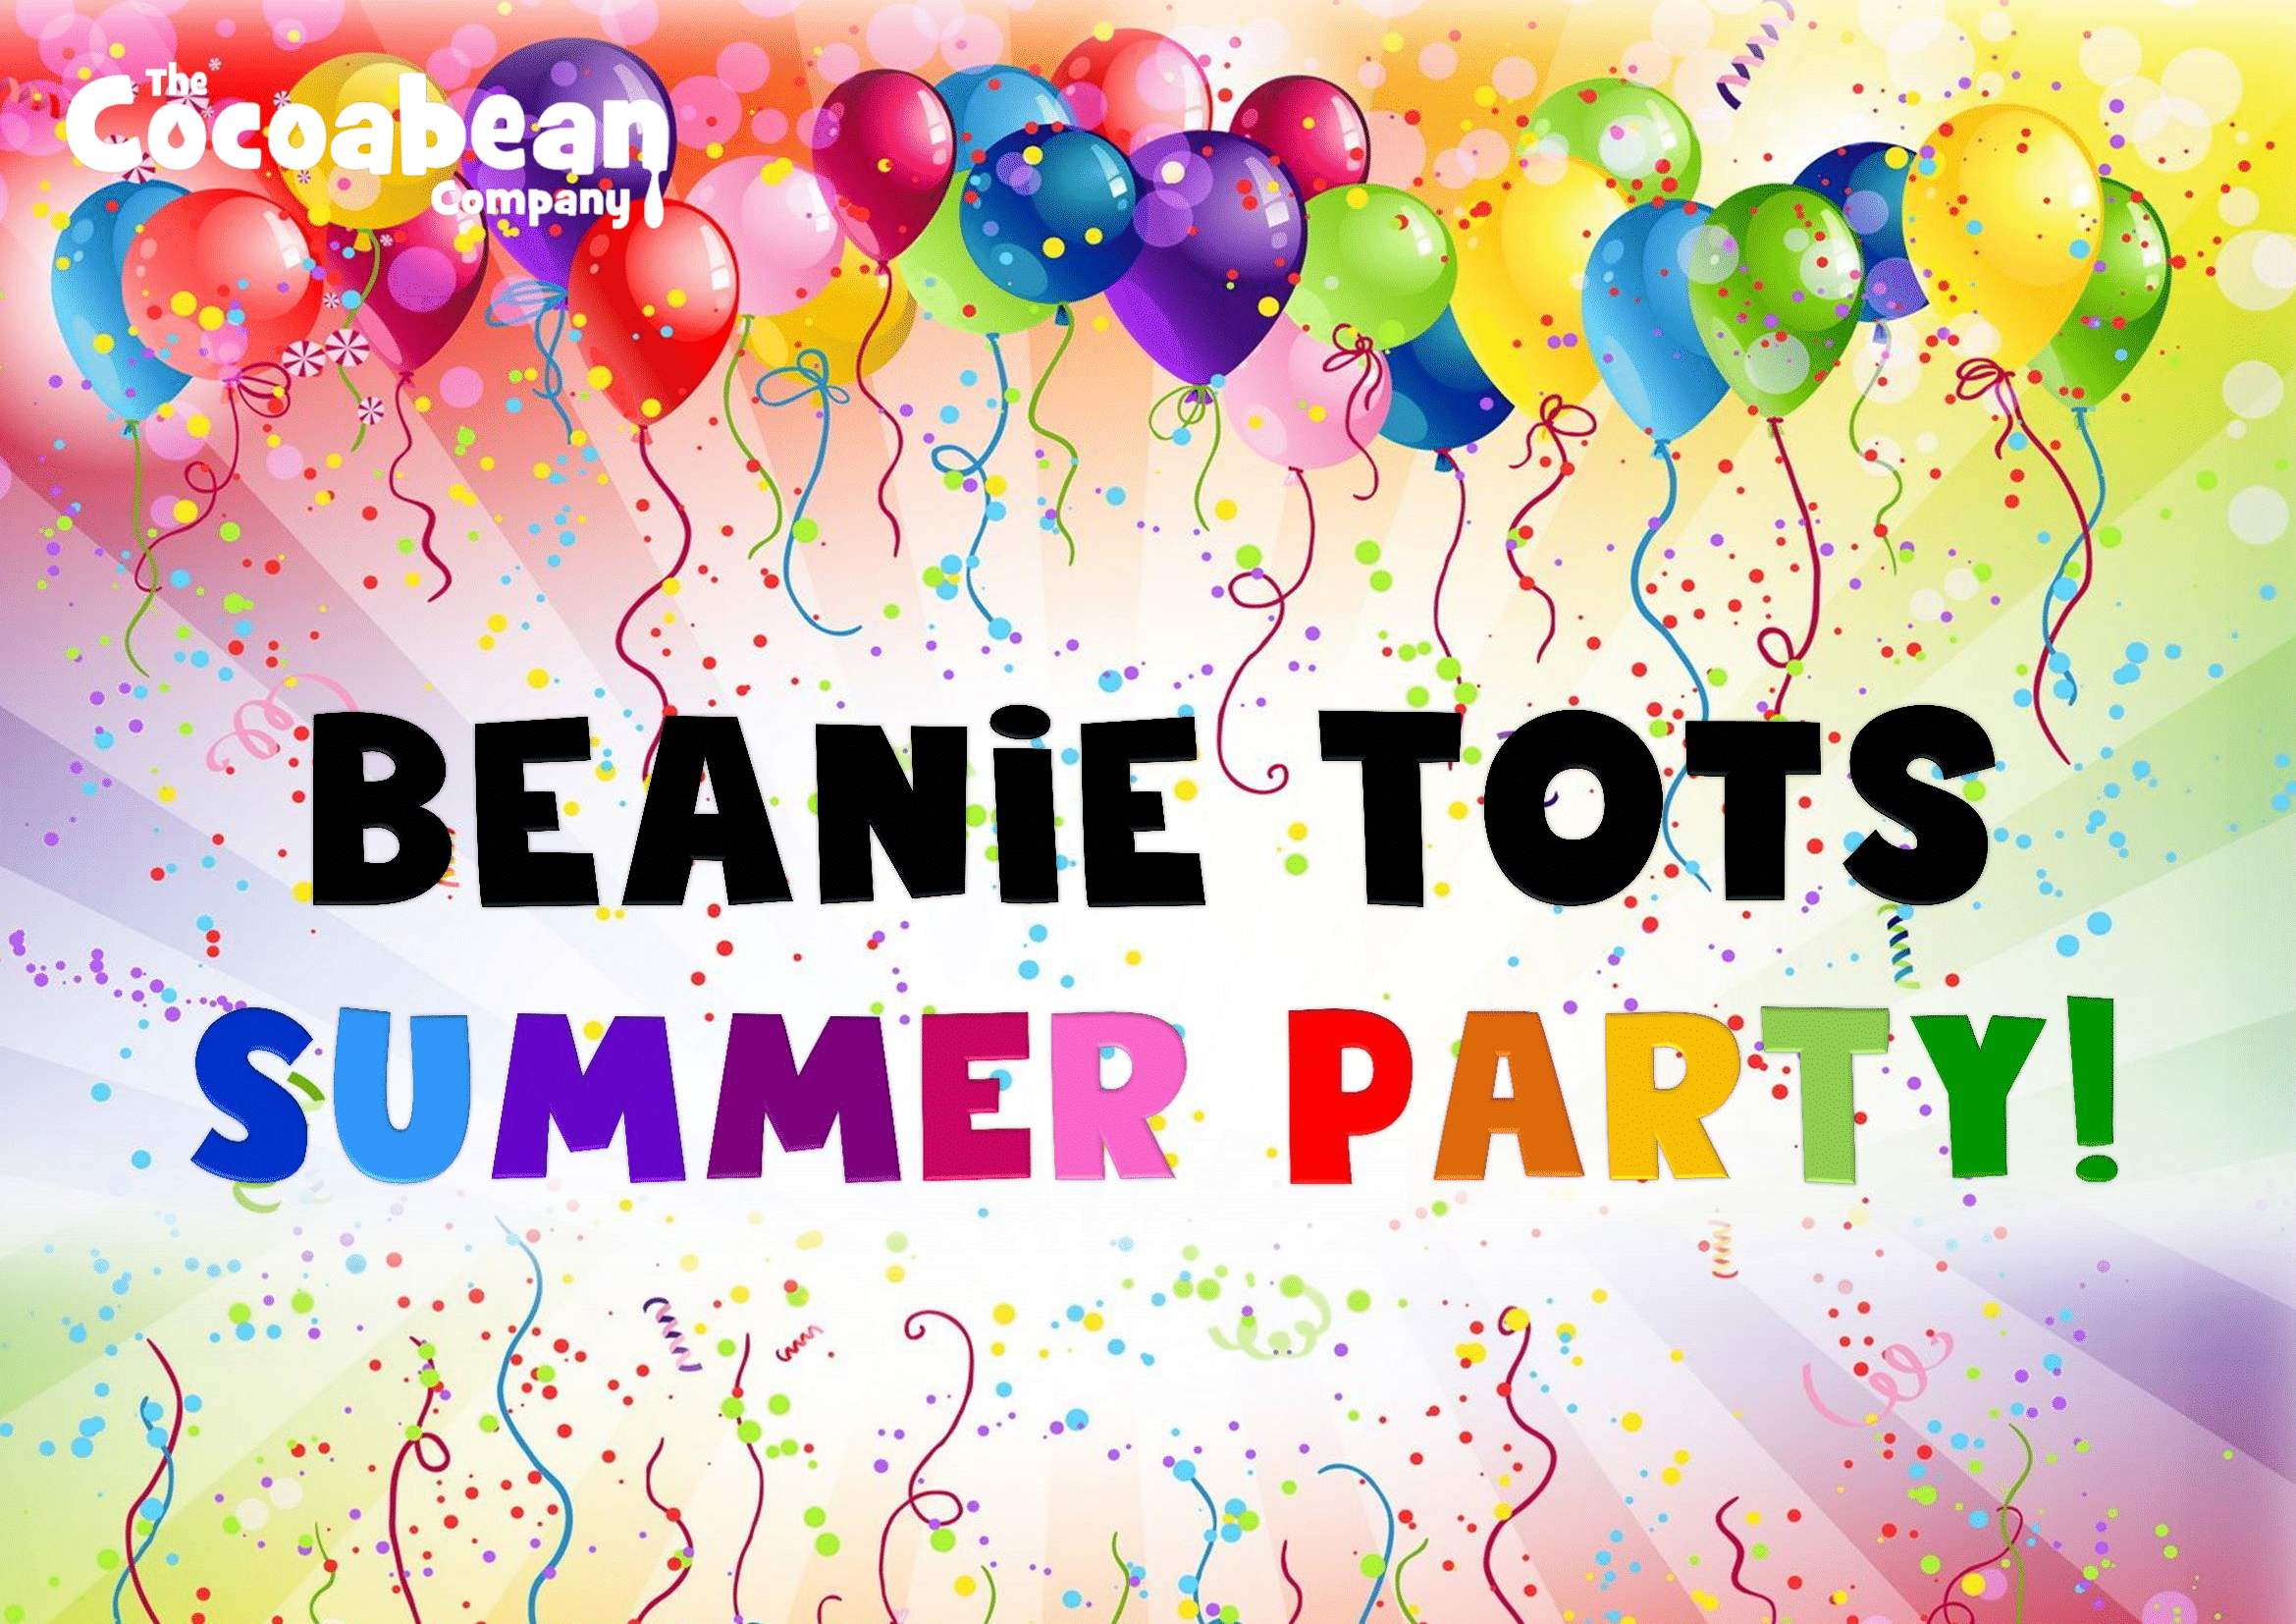 beanie tots summer party rainbow colours and balloons